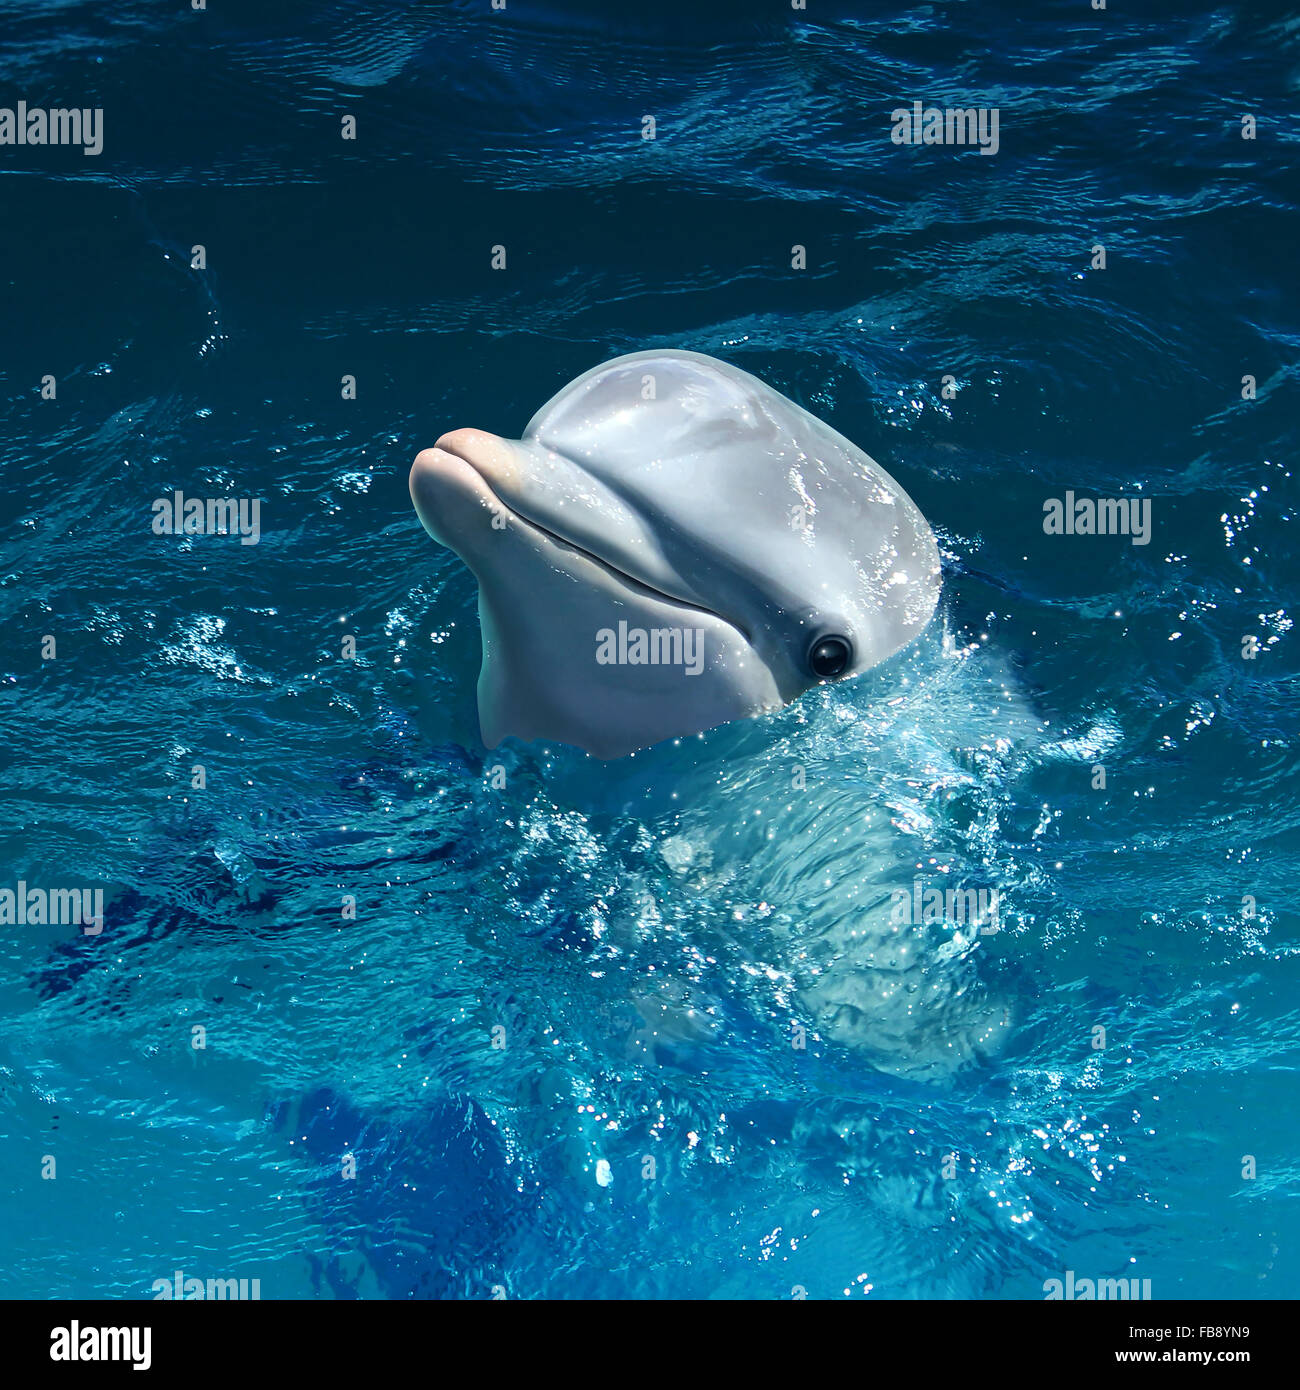 Dolphin head out of water with a cute smile as a marine mammal symbol at sea or swimming in the ocean. - Stock Image